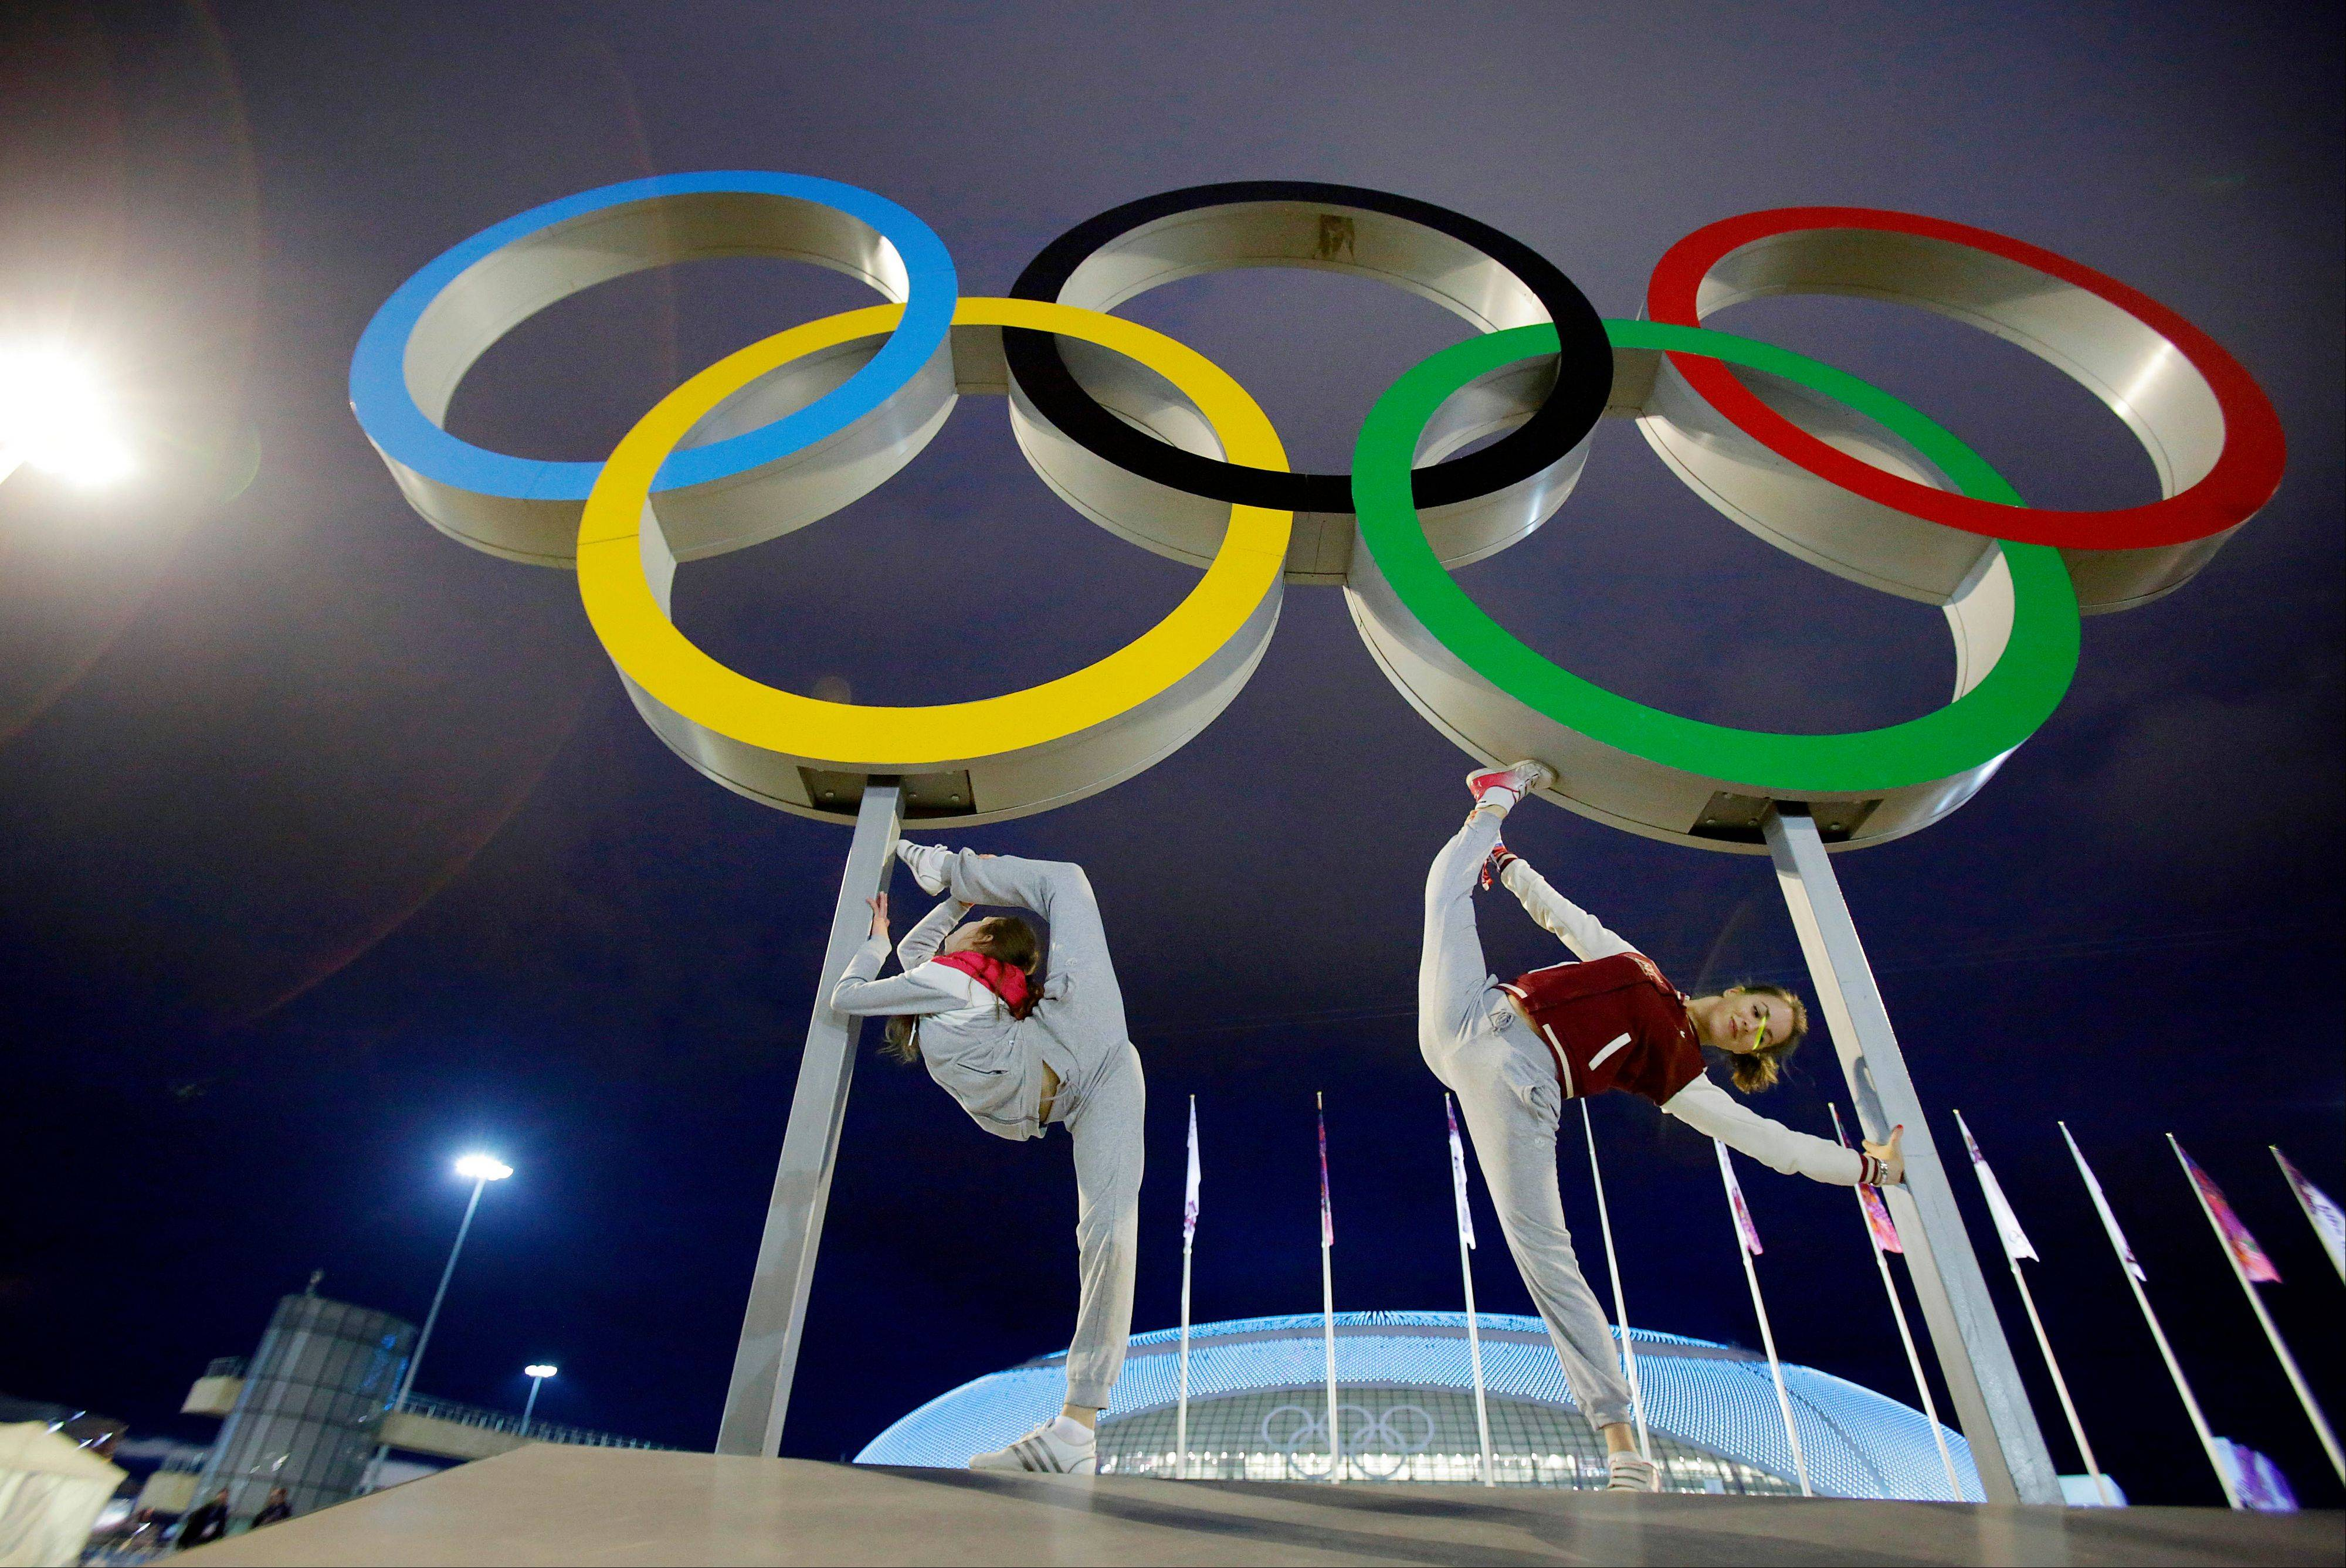 Russian dancers who will be performing at the opening ceremony pose with the Olympic rings as their friend photographs them, ahead of the 2014 Winter Olympics, Thursday, Feb. 6, 2014, in Sochi, Russia.